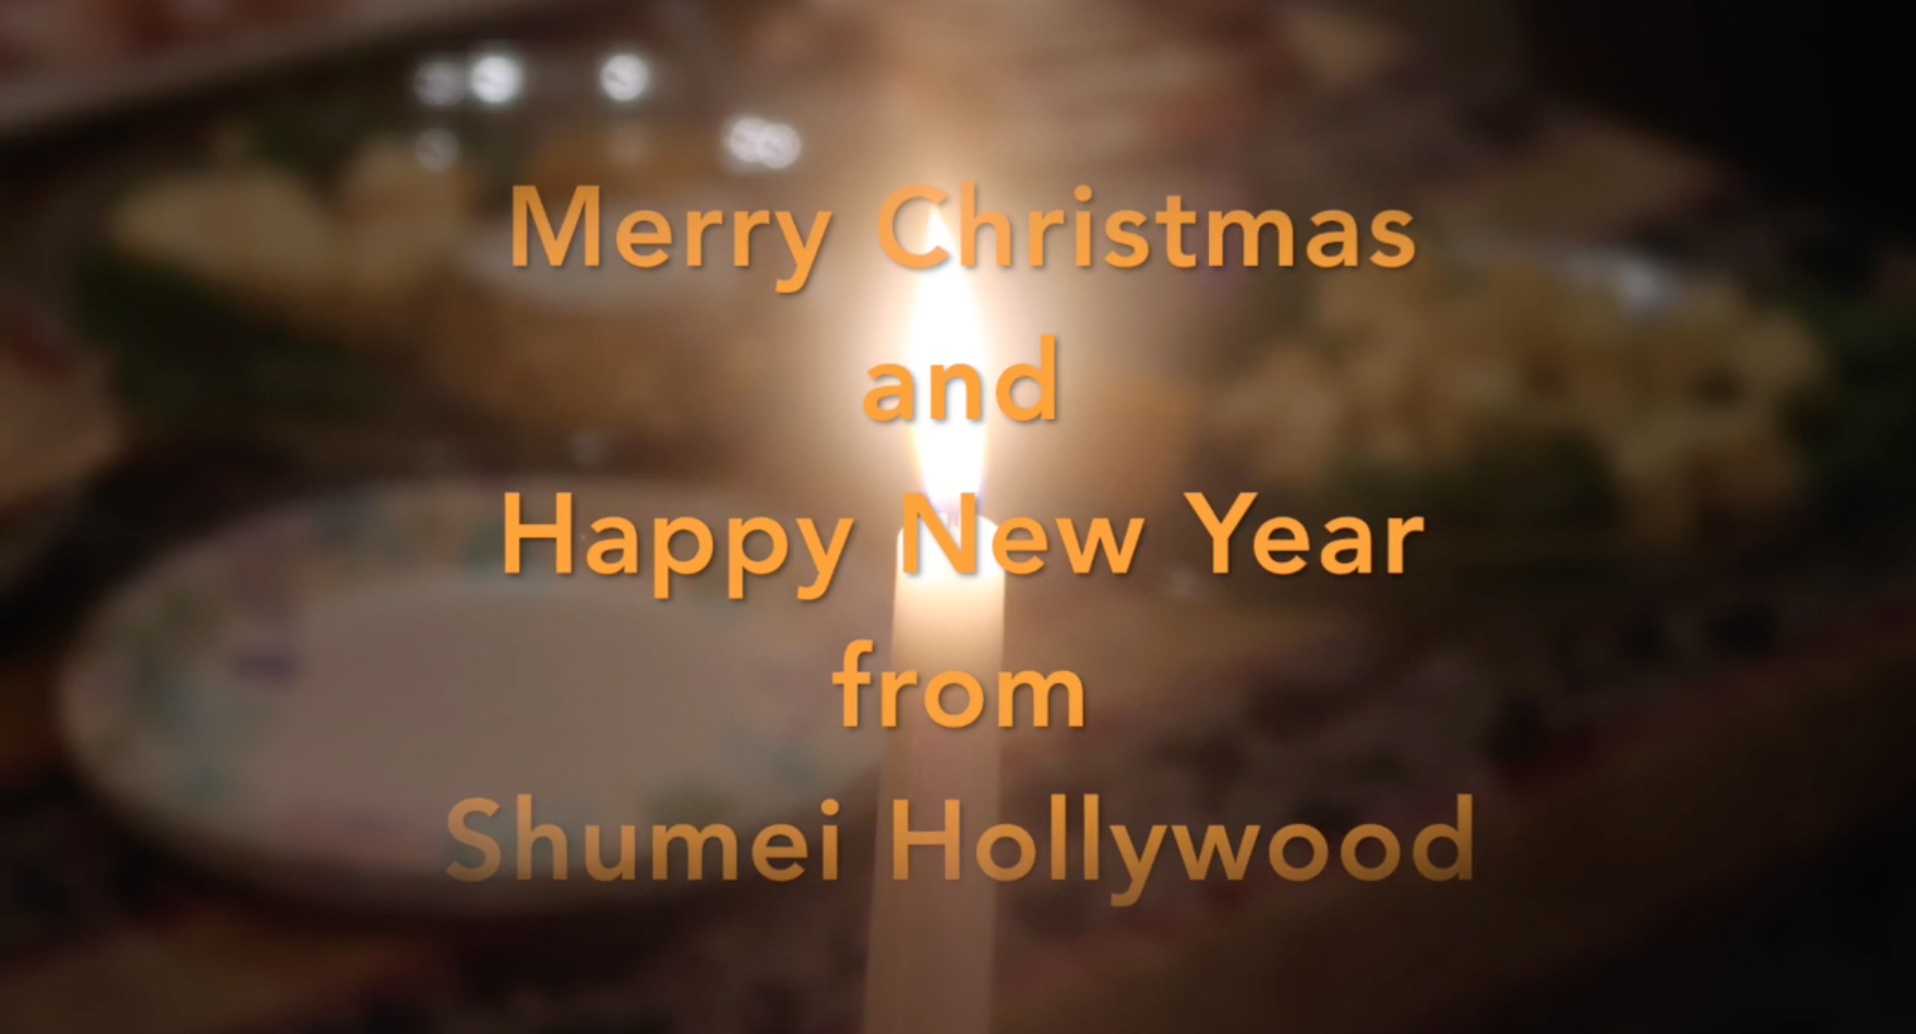 Merry Christmas from Shumei Hollywood